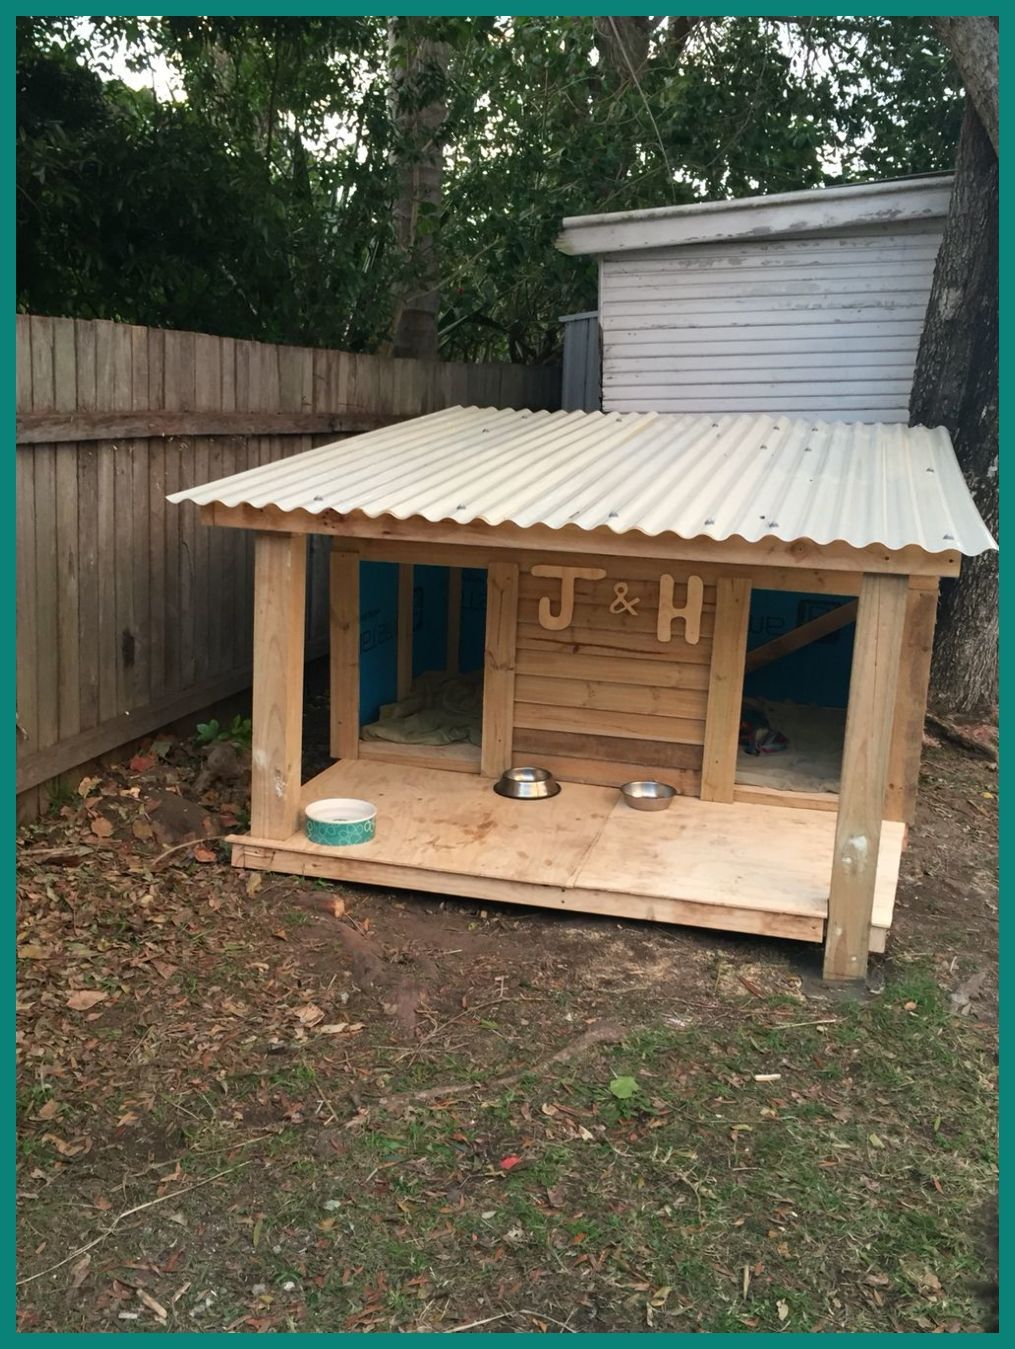 How To Build A Large Dog House Diy We Have An Outside Pet That